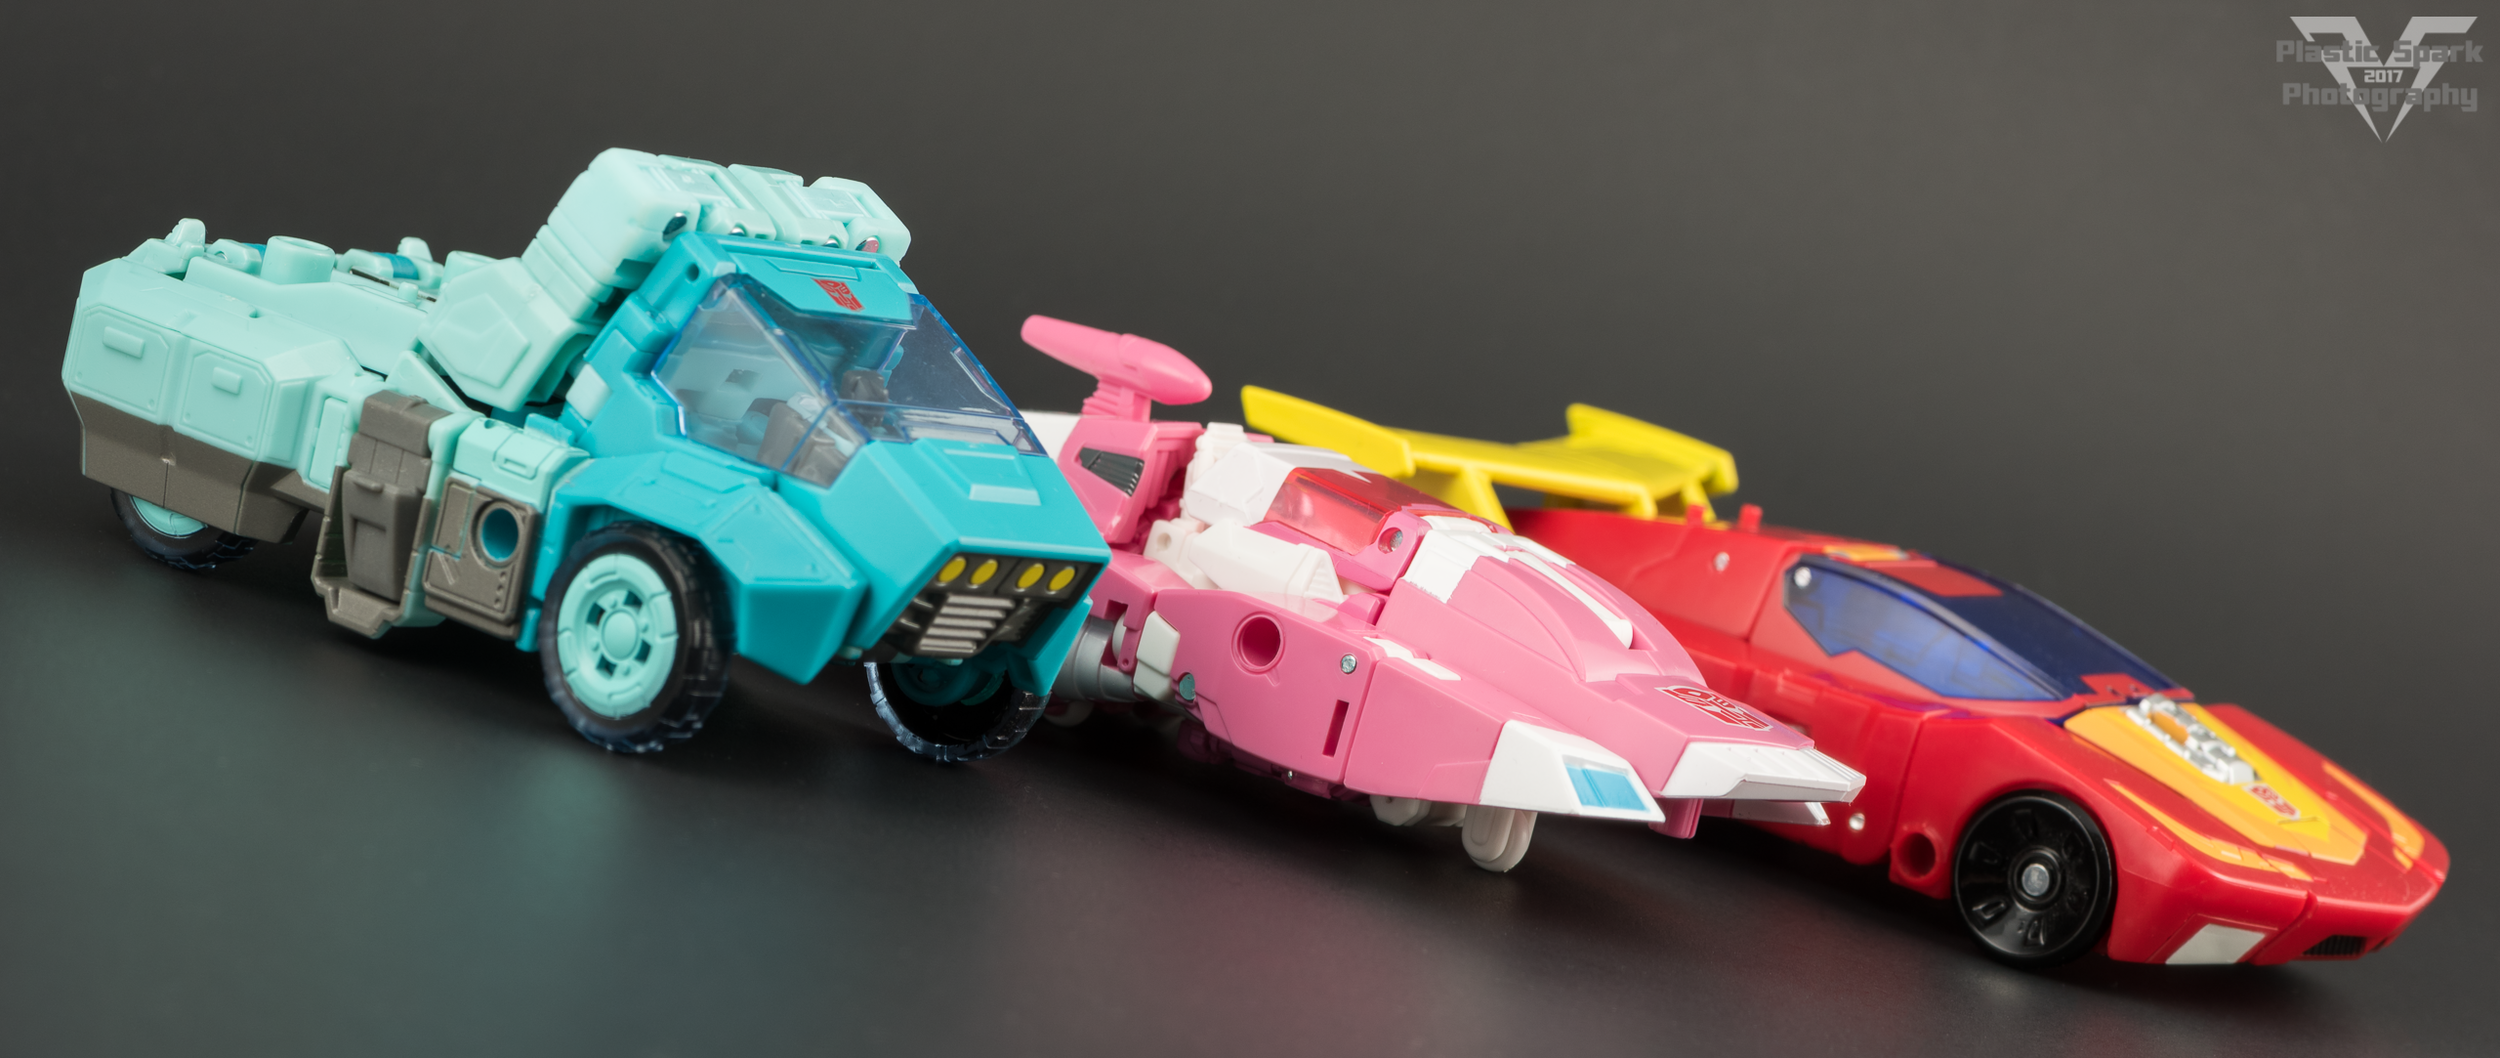 Hascon-Arcee-(10-of-11).png